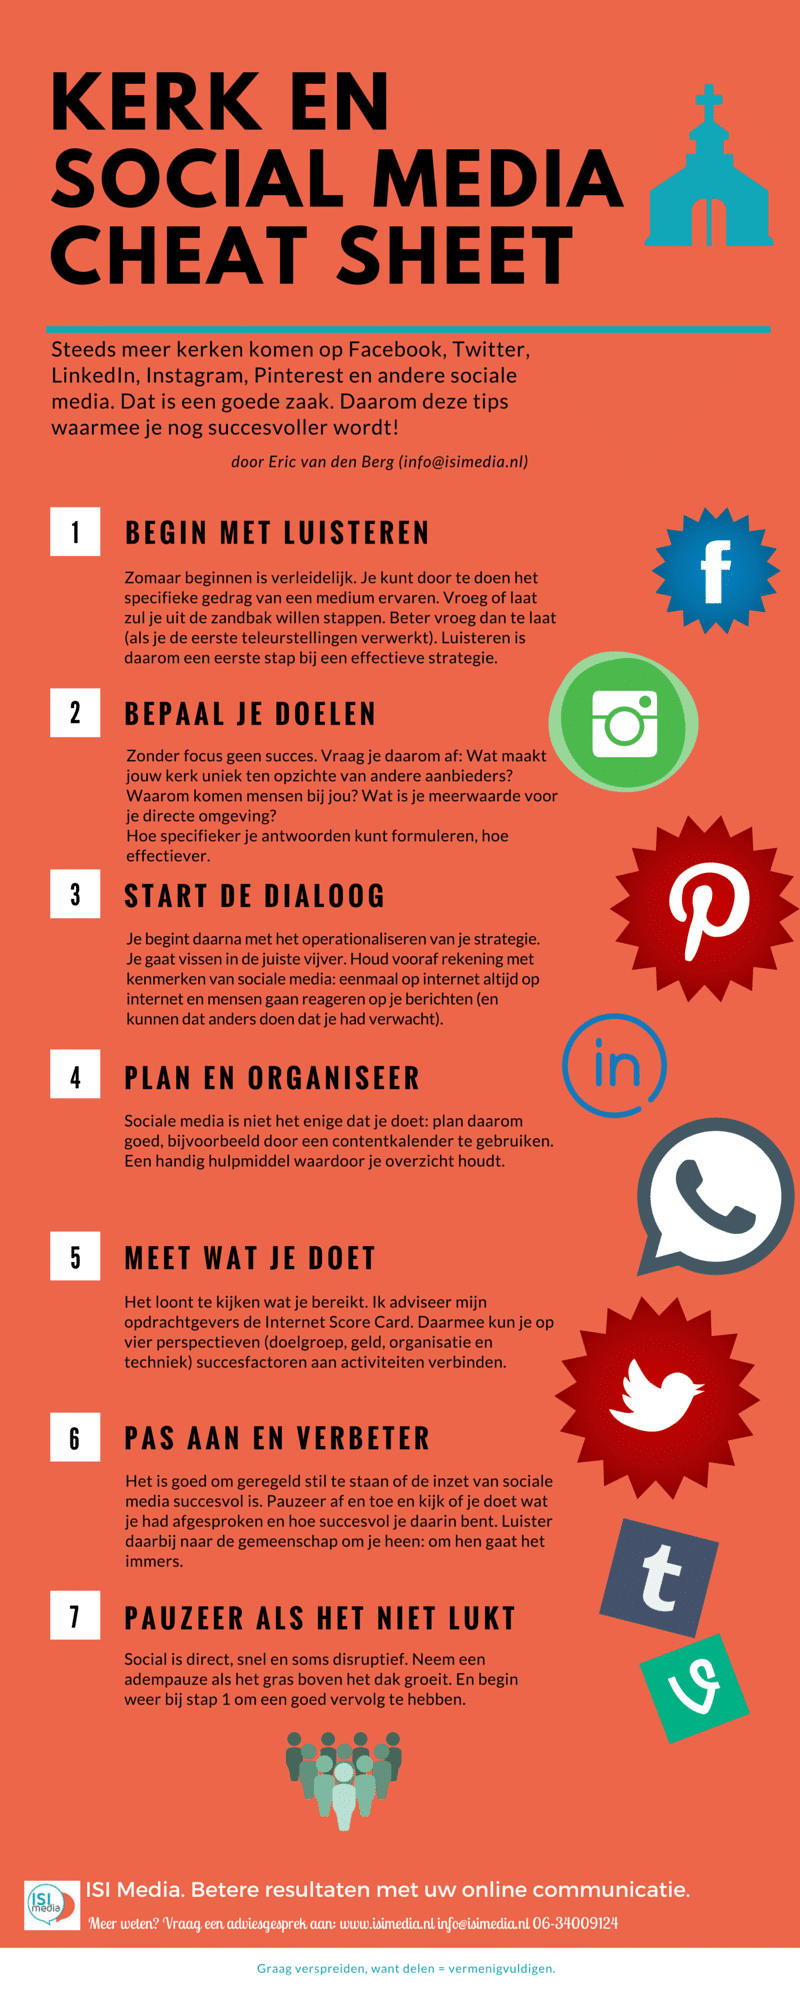 Kerk en social media cheat sheet [infographic]